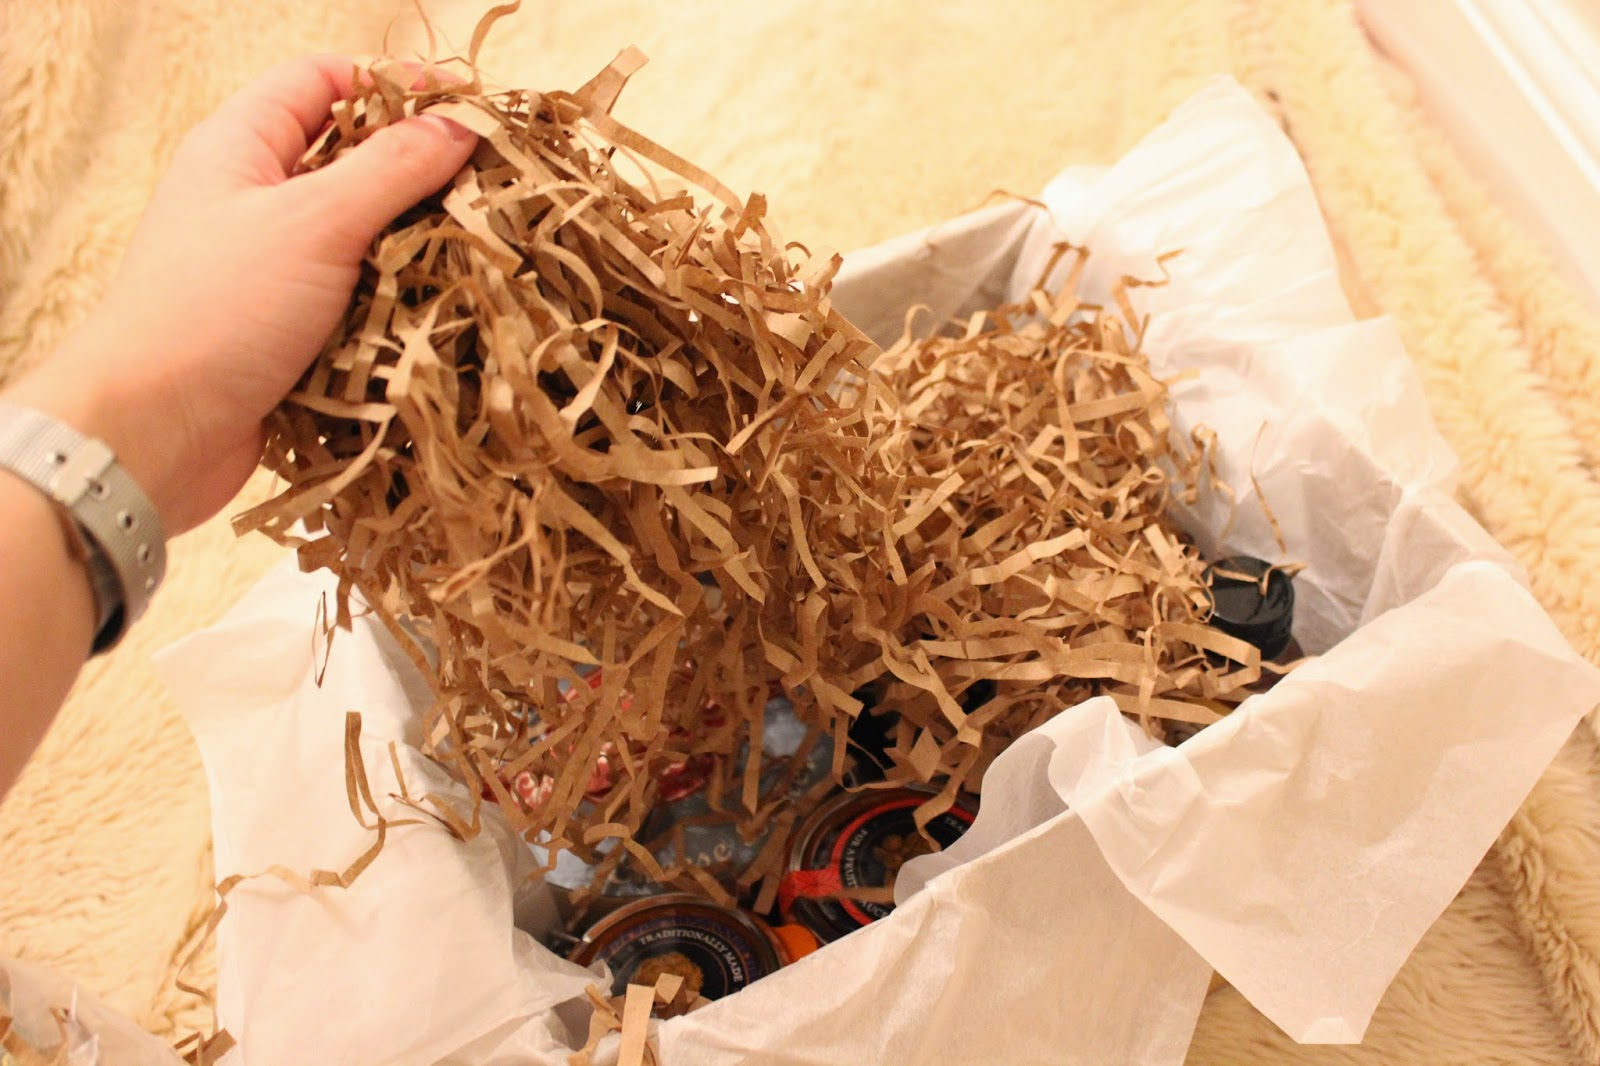 Shredded paper in luxury food hamper